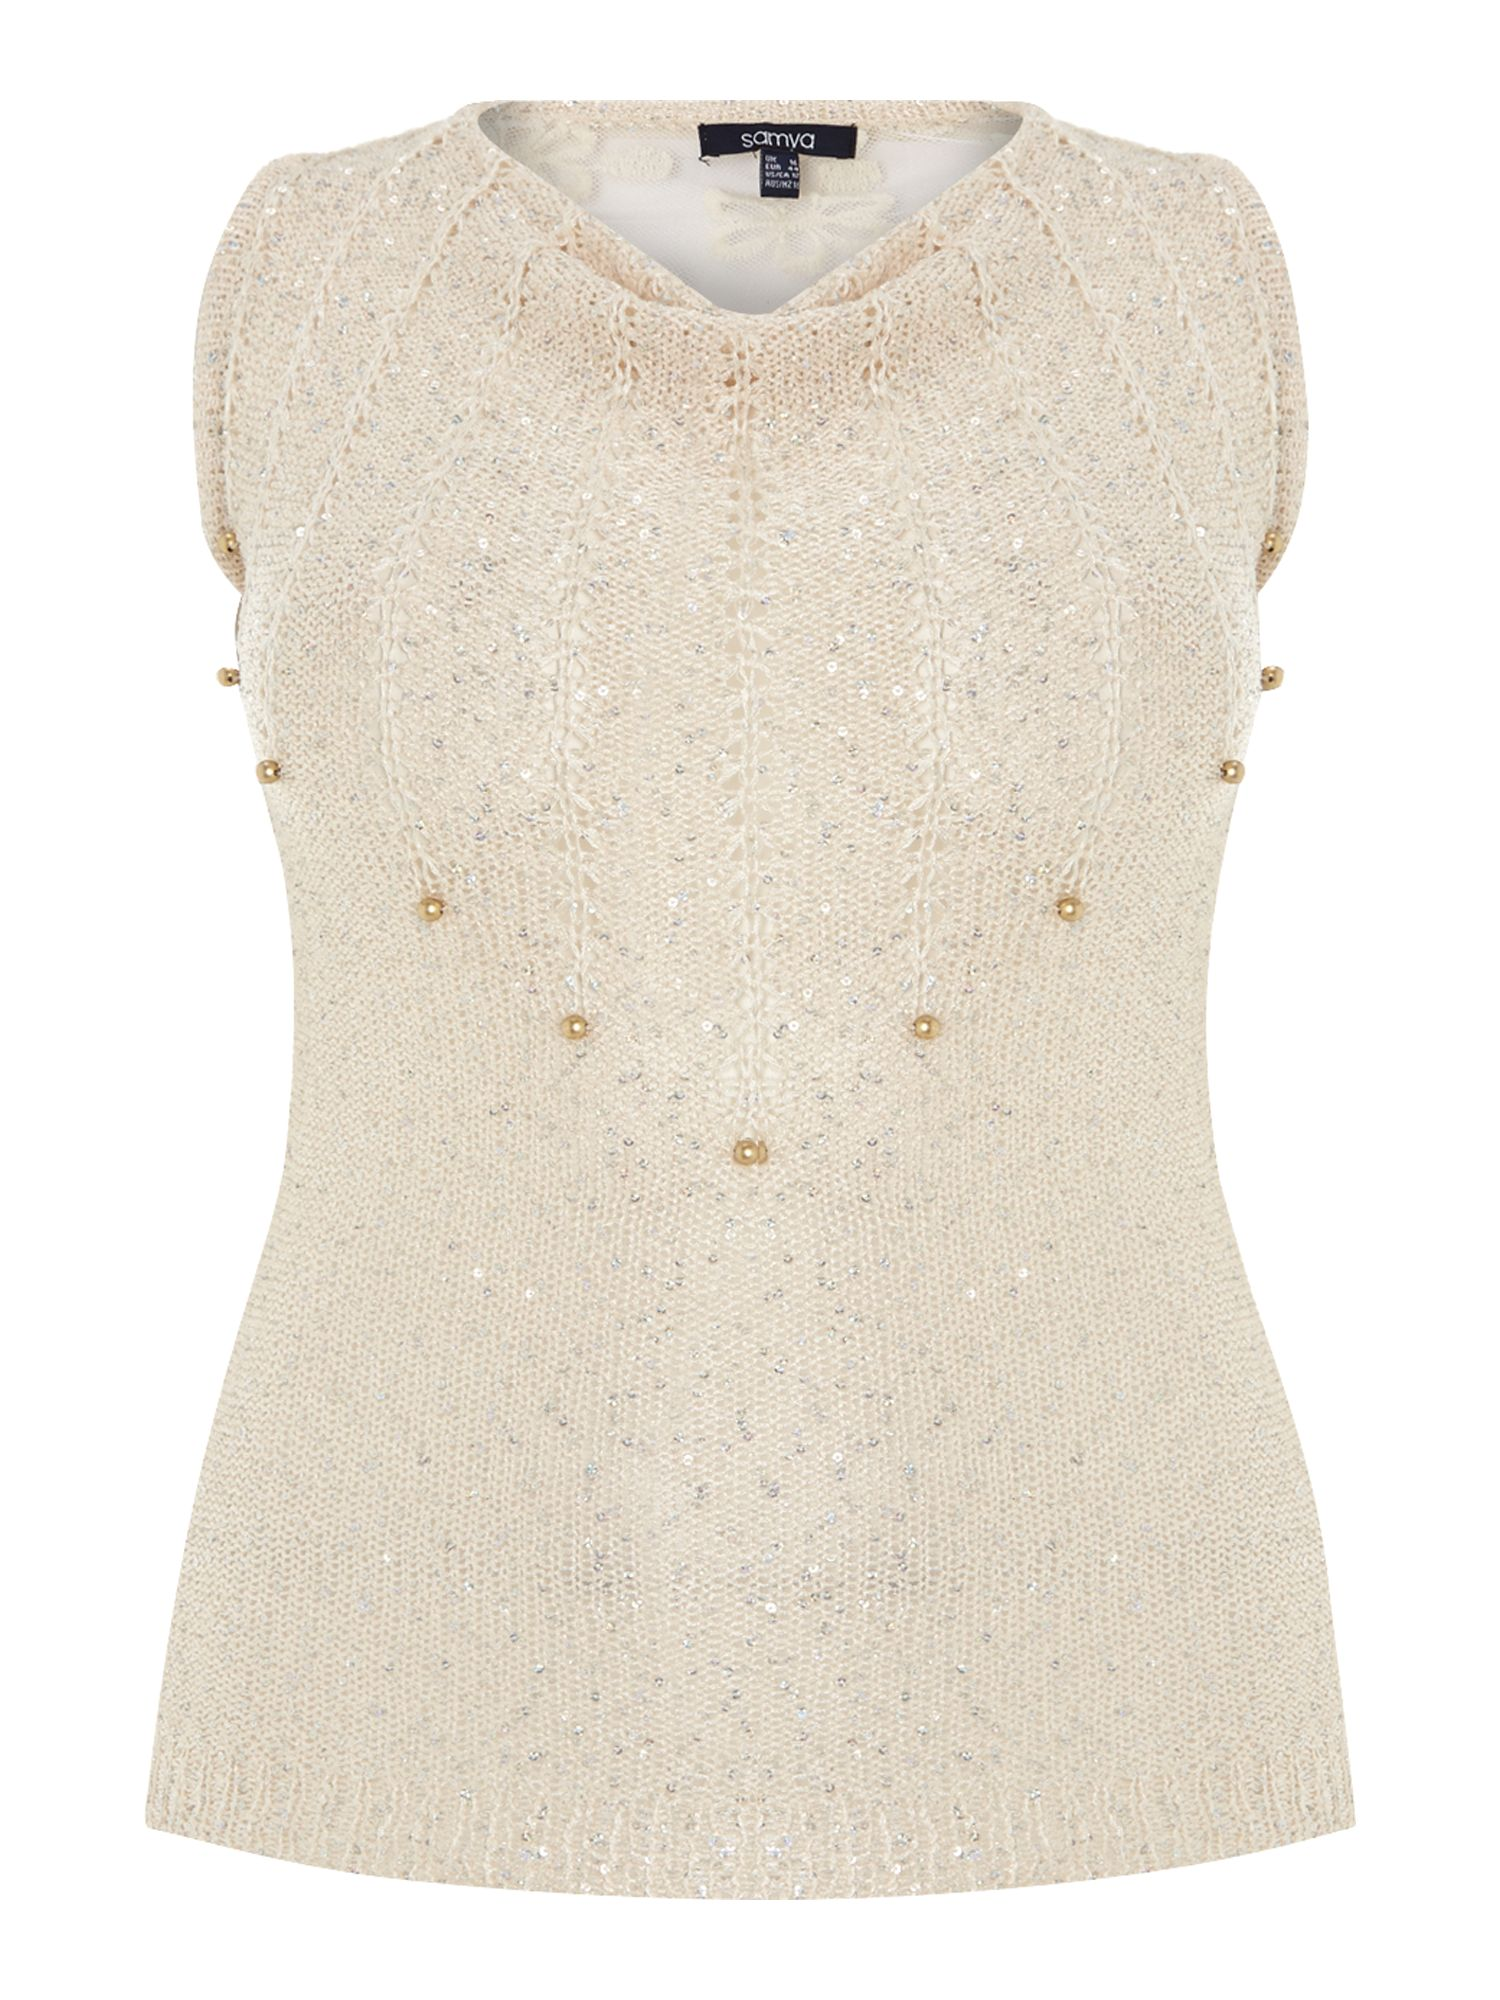 Sequin & pearls tank jumper top